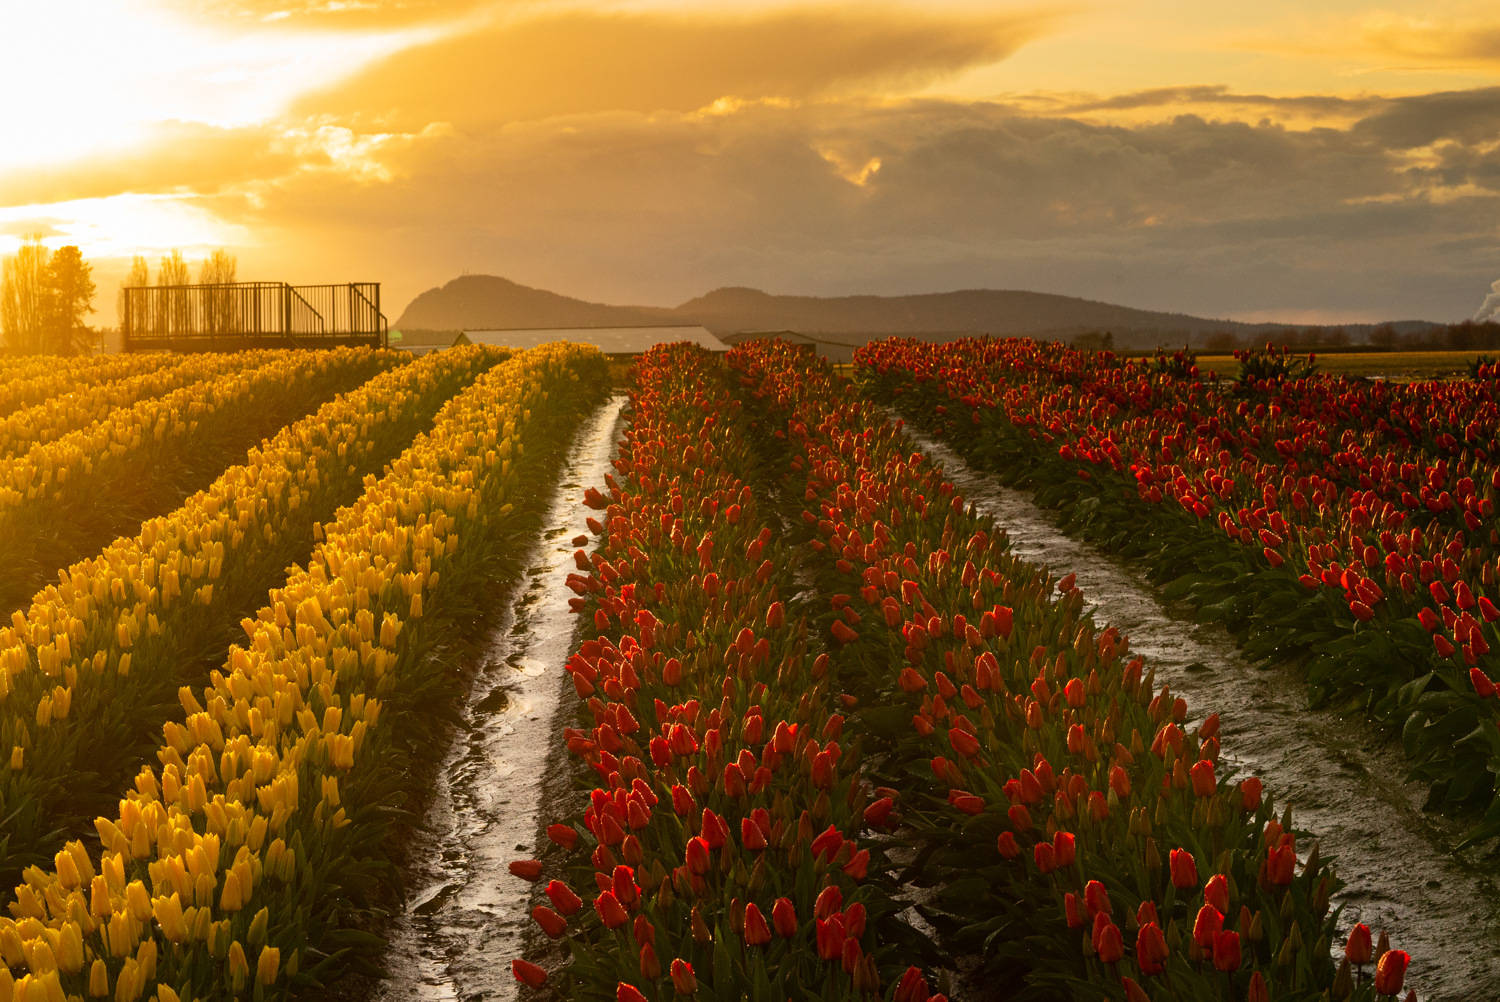 The annual Tulip Festival in Skagit Valley, Washington, has been canceled due to the coronavirus. (Photo courtesy of Tulip Town)